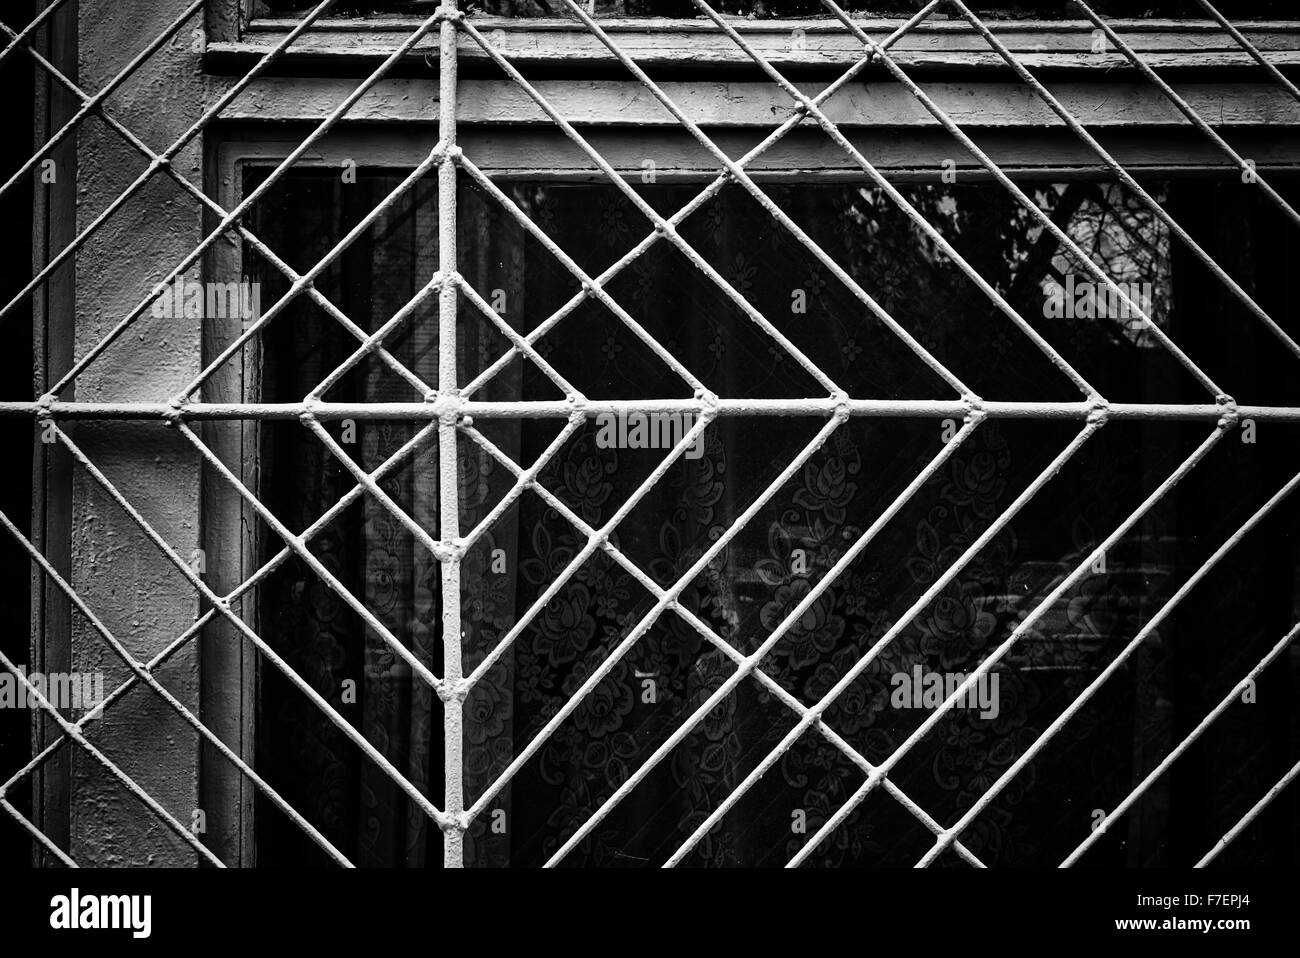 Window security frame constructed from metal resembles a spider web in composition. The darkness behind the grill - Stock Image